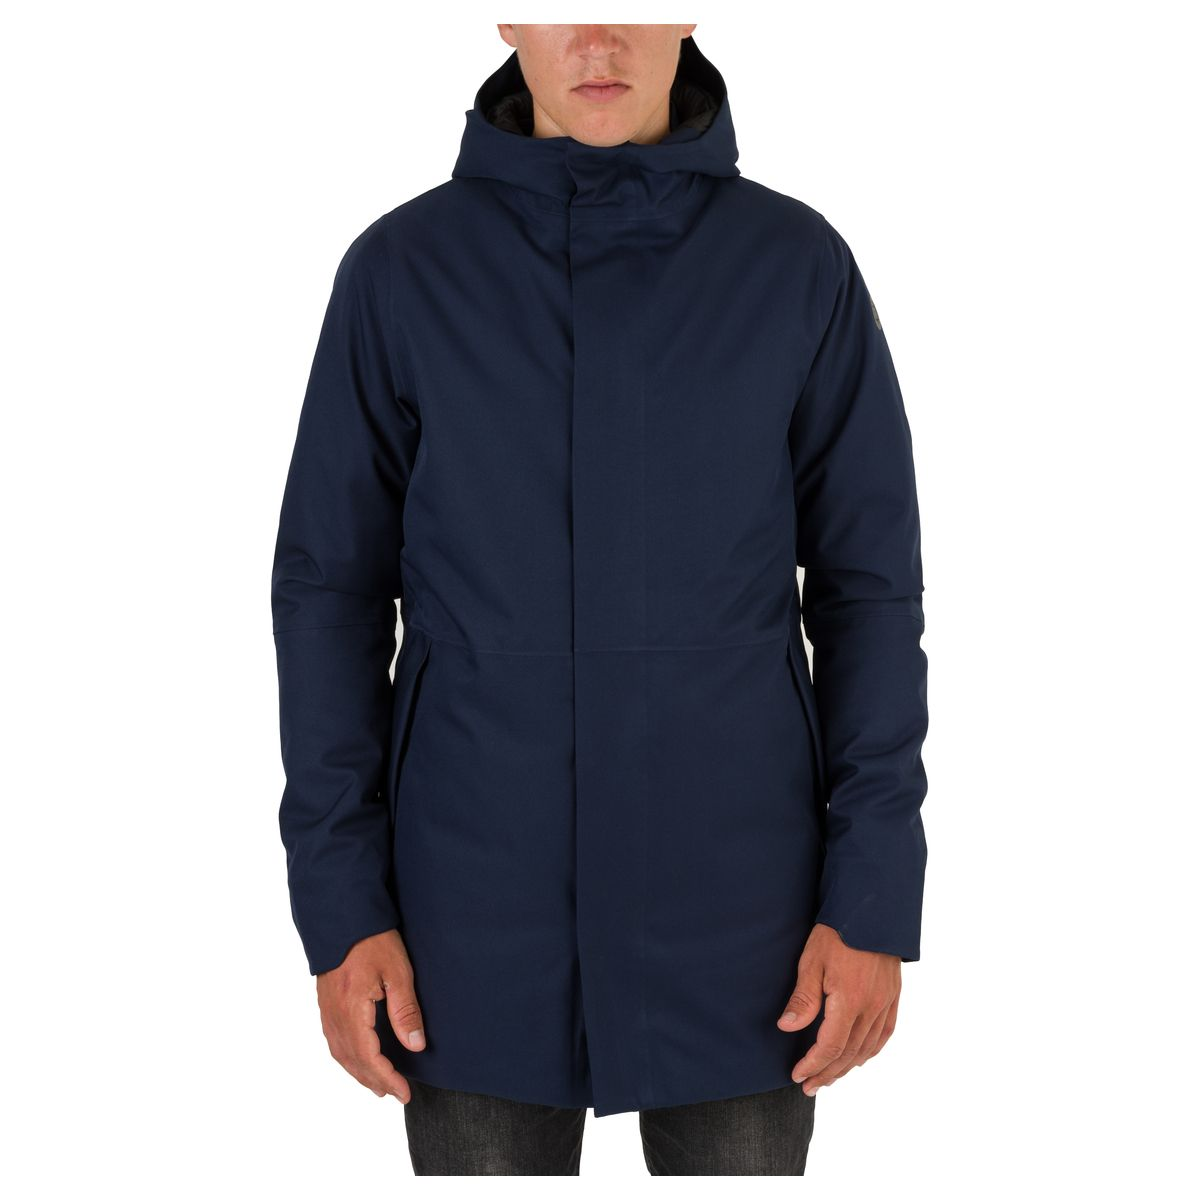 Clean Winter Jacket Urban Outdoor Herren fit example